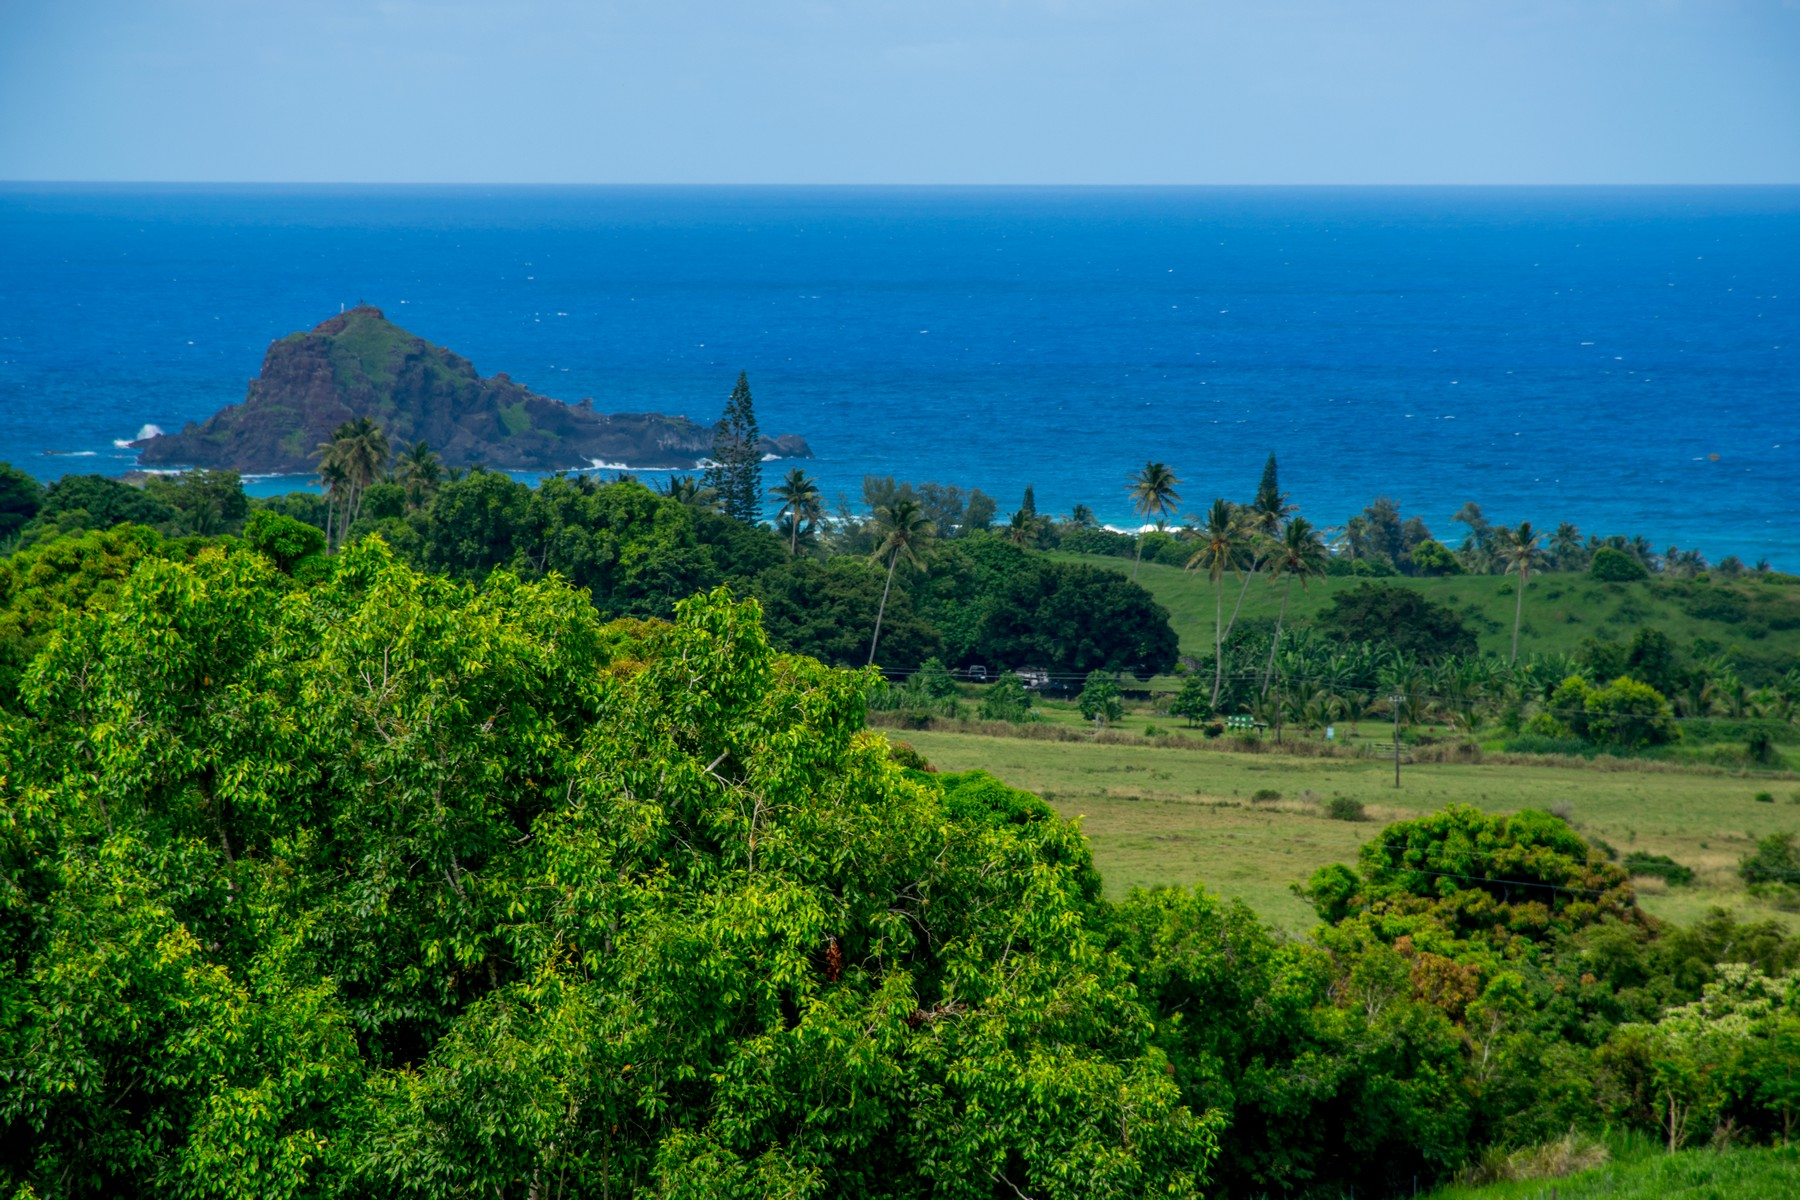 토지 용 매매 에 Over 15 Acres in Beauful Maka'alae-Hana, Maui 153 Kapia Road, Lot#4-Parcel #69 Hana, 하와이, 96713 미국